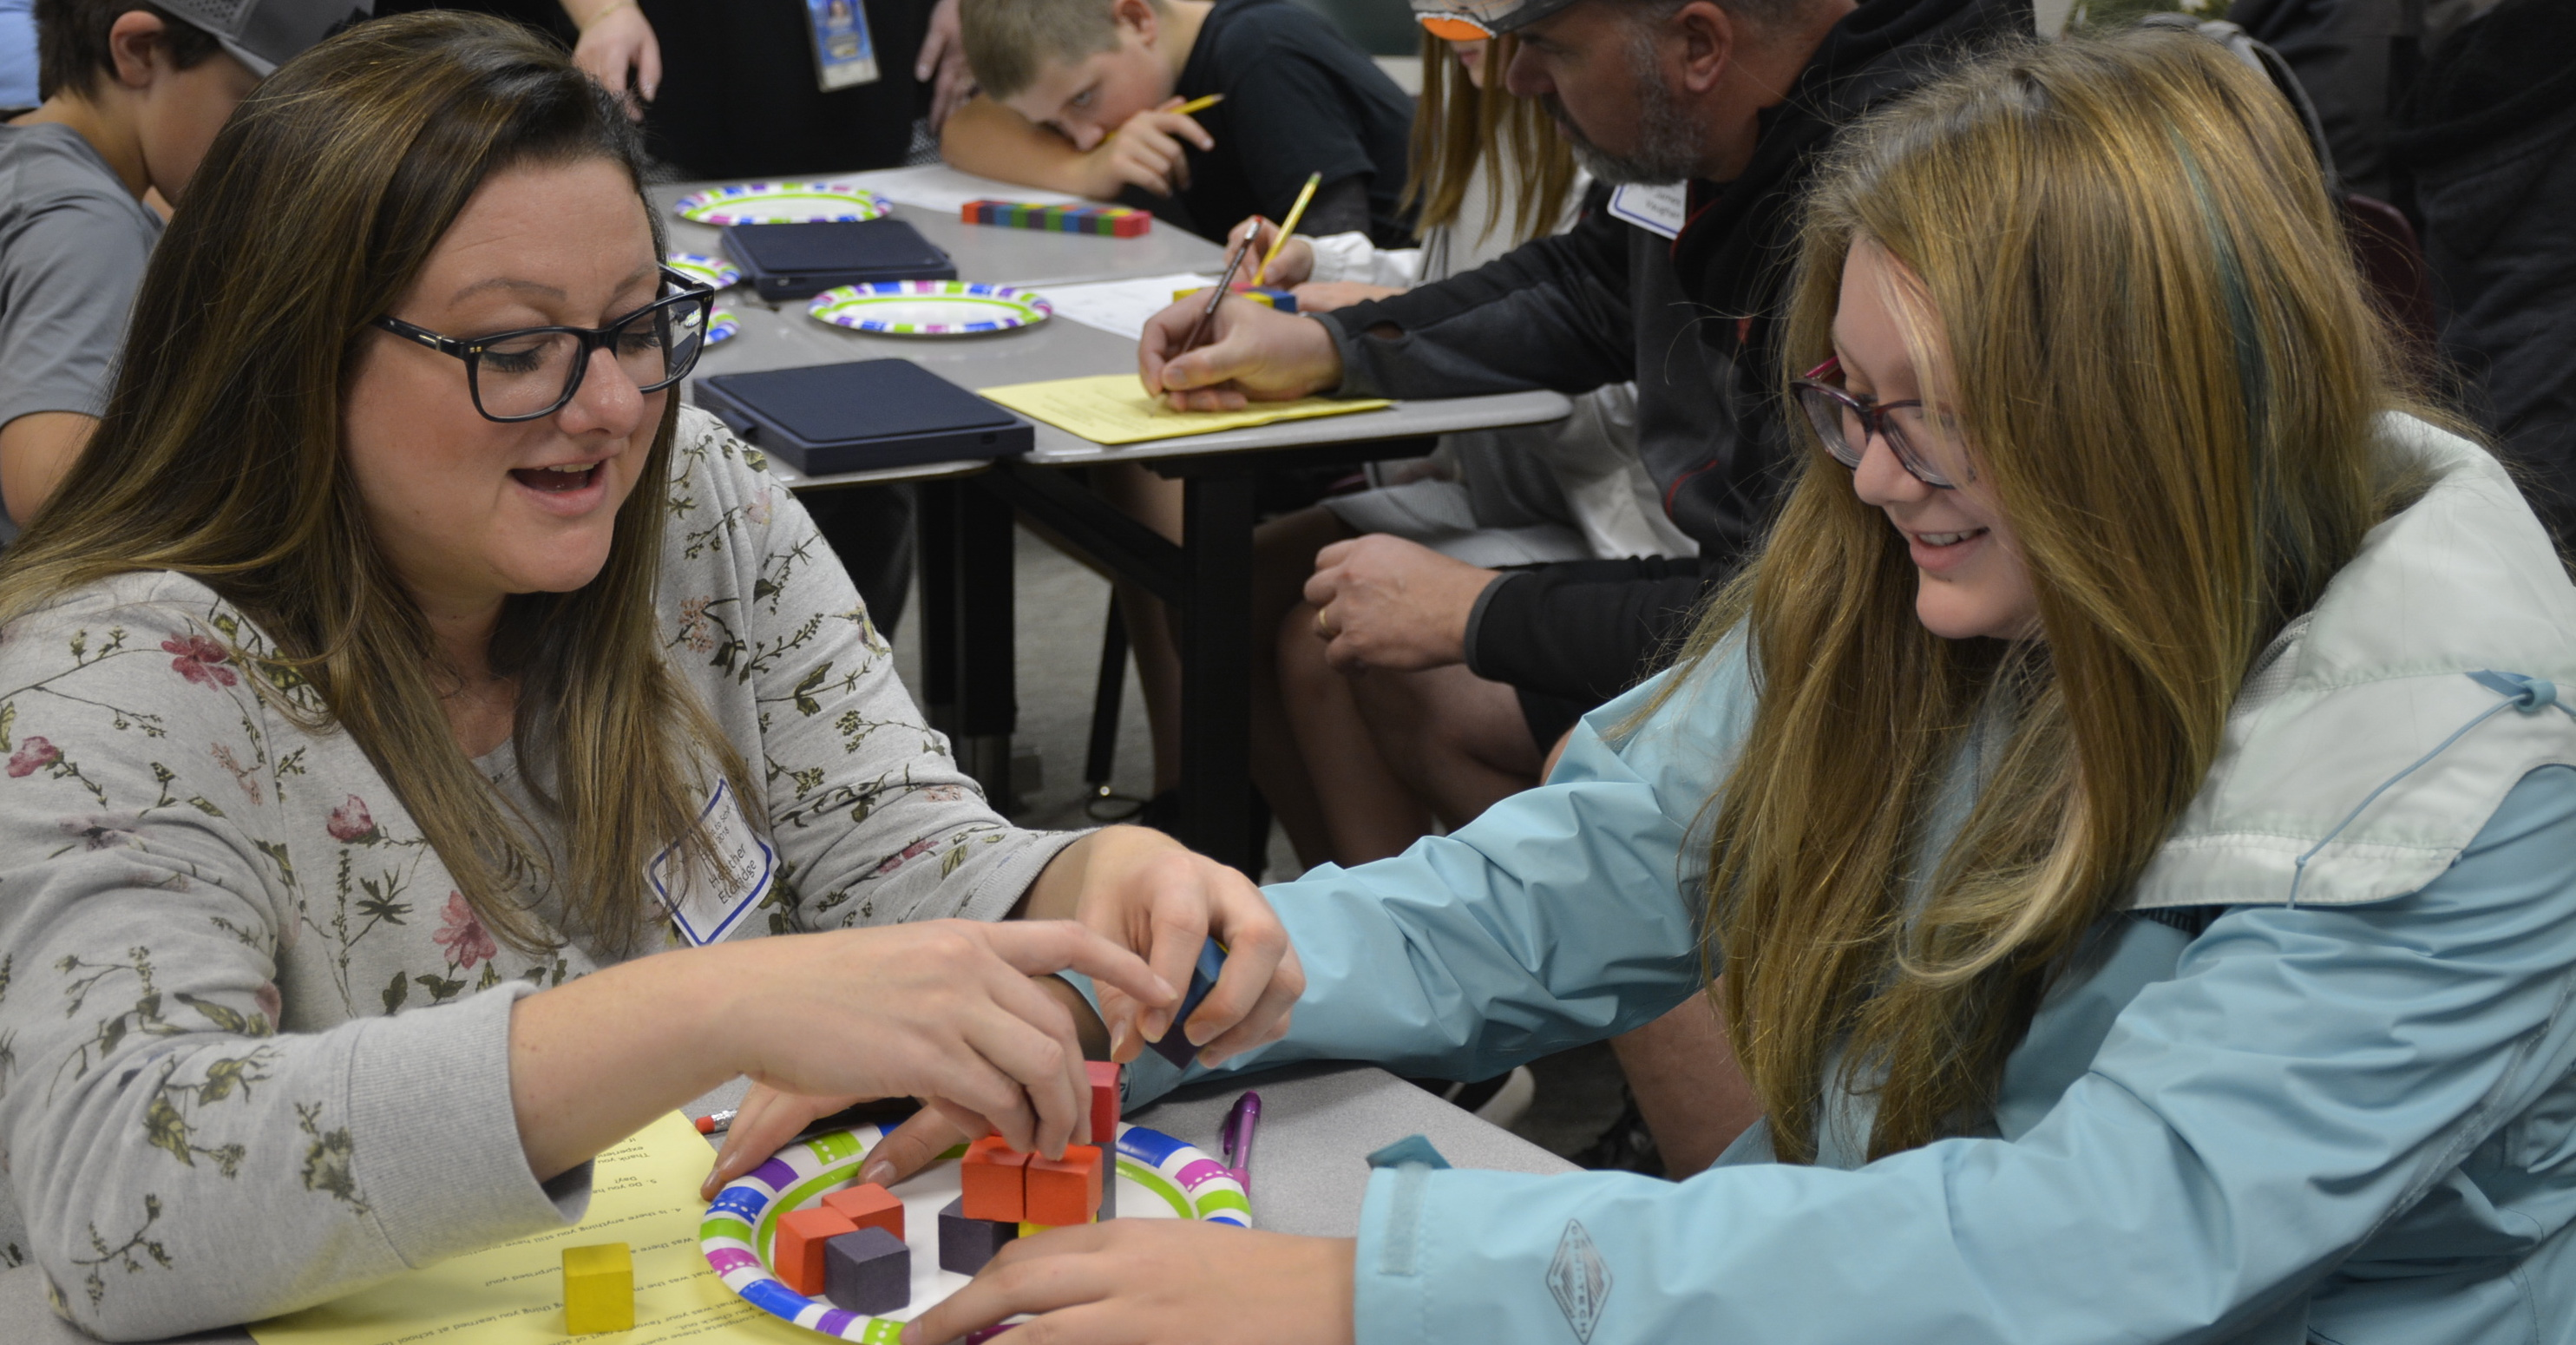 CCMS parent and student participate in activity with colored blocks